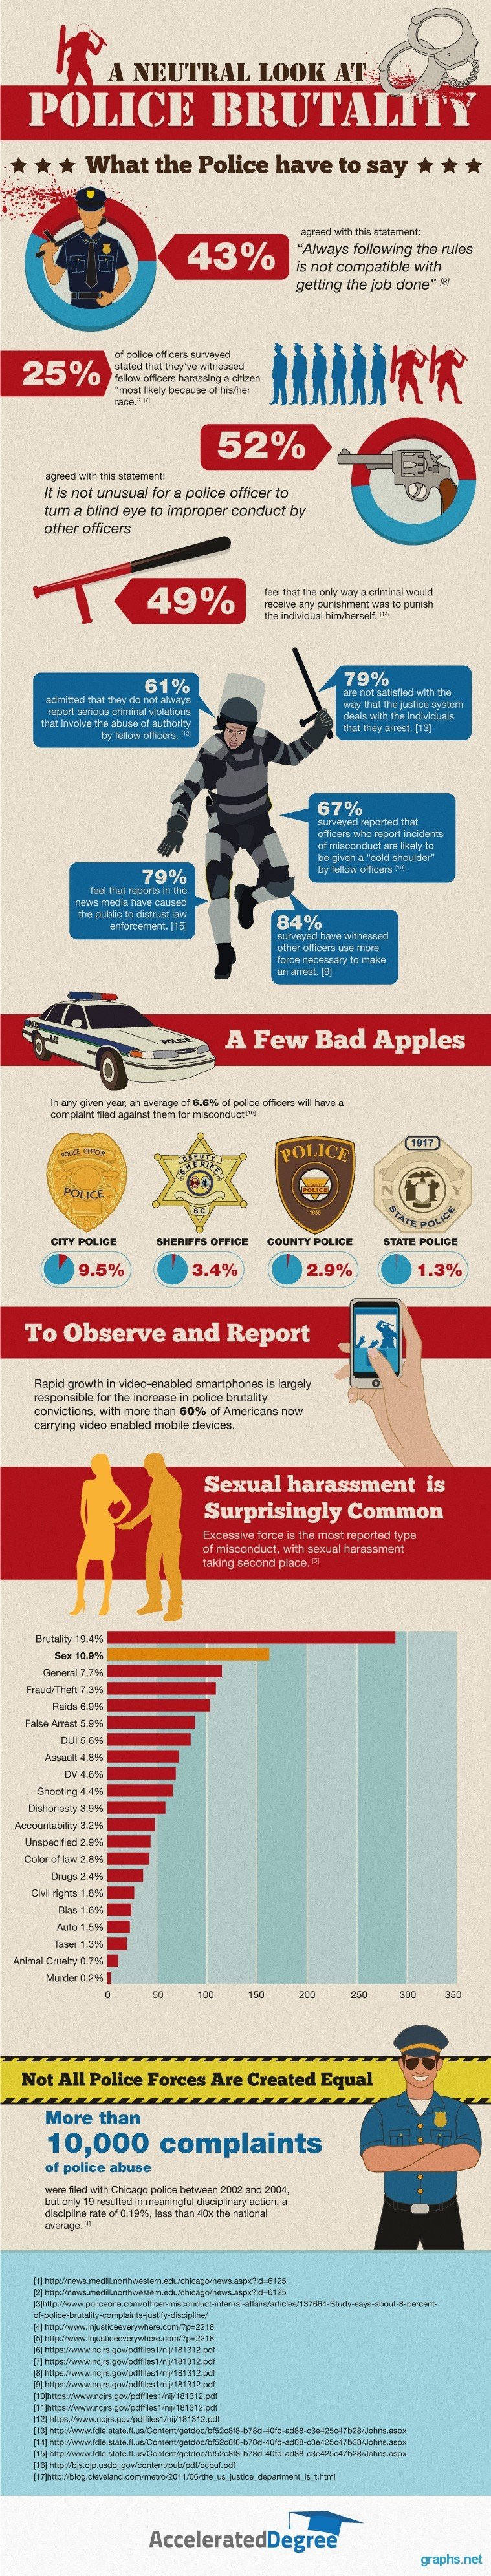 A Few Bad Apples: Statistics of Police Brutality - Infographic